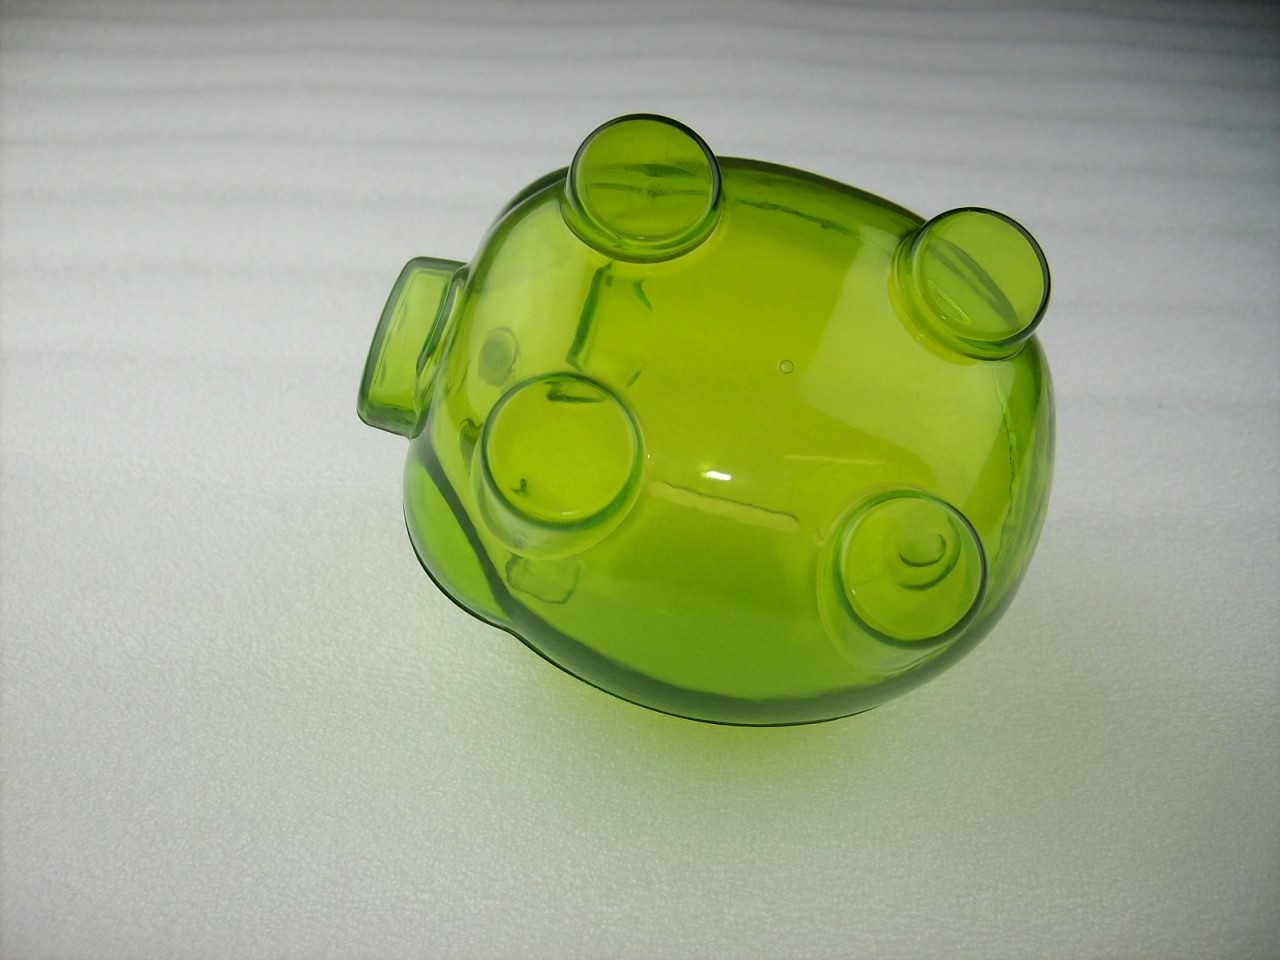 Mini Transparent Plastic Coin Pig Piggy Money Bank Green Without Stopper Ebay